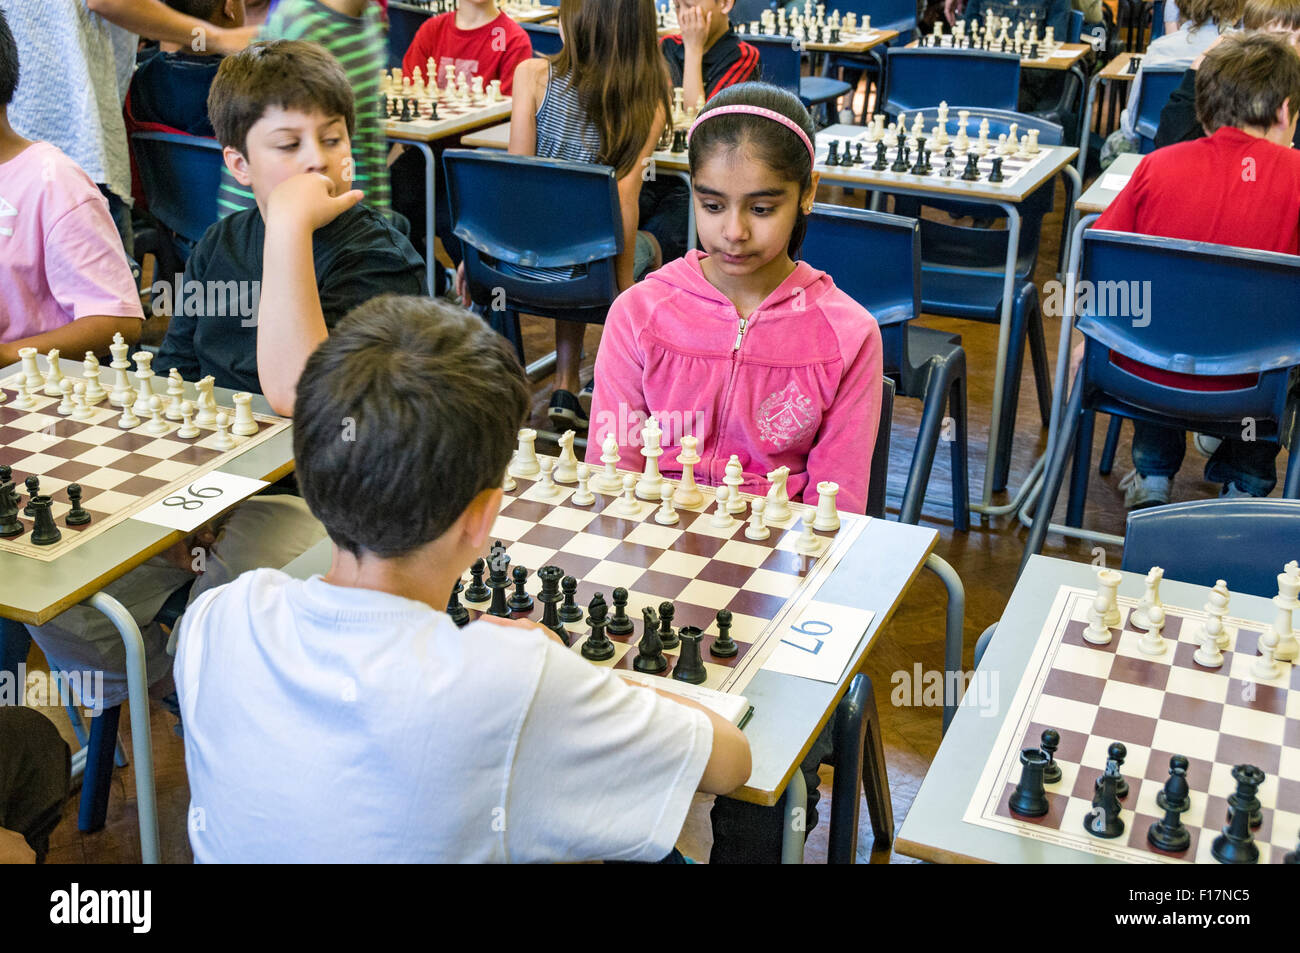 Contestants facing each other at chess tournament - Stock Image